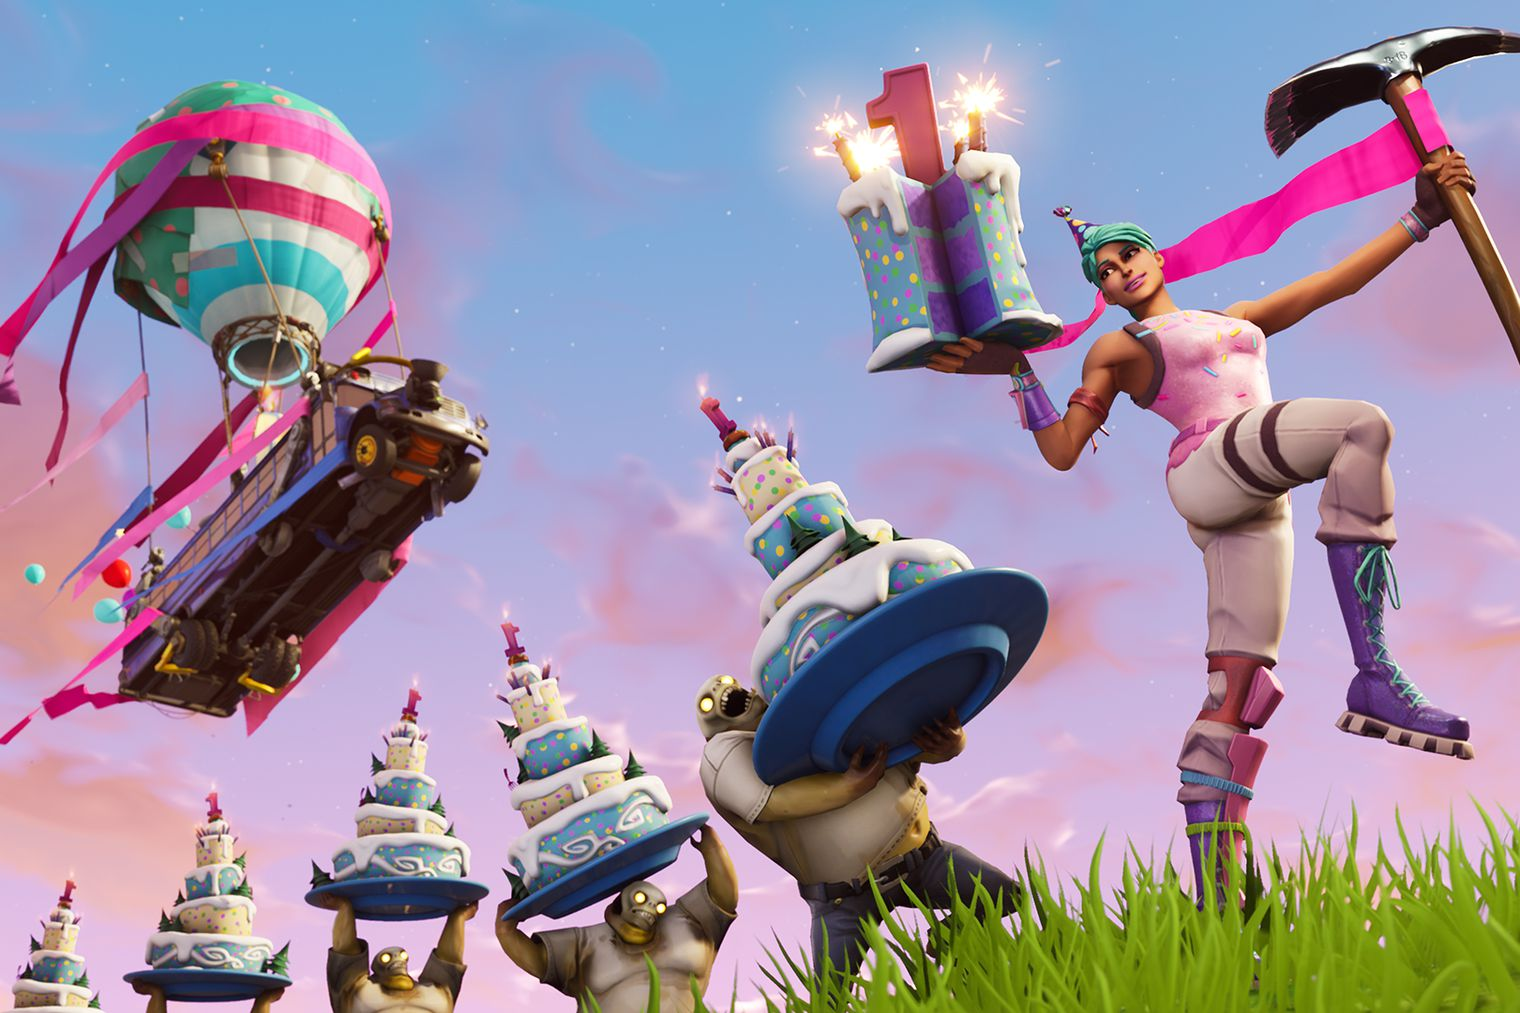 Fortnite: Battle Royale – One Year Anniversary Challenge Guide | All 10 Cake Locations